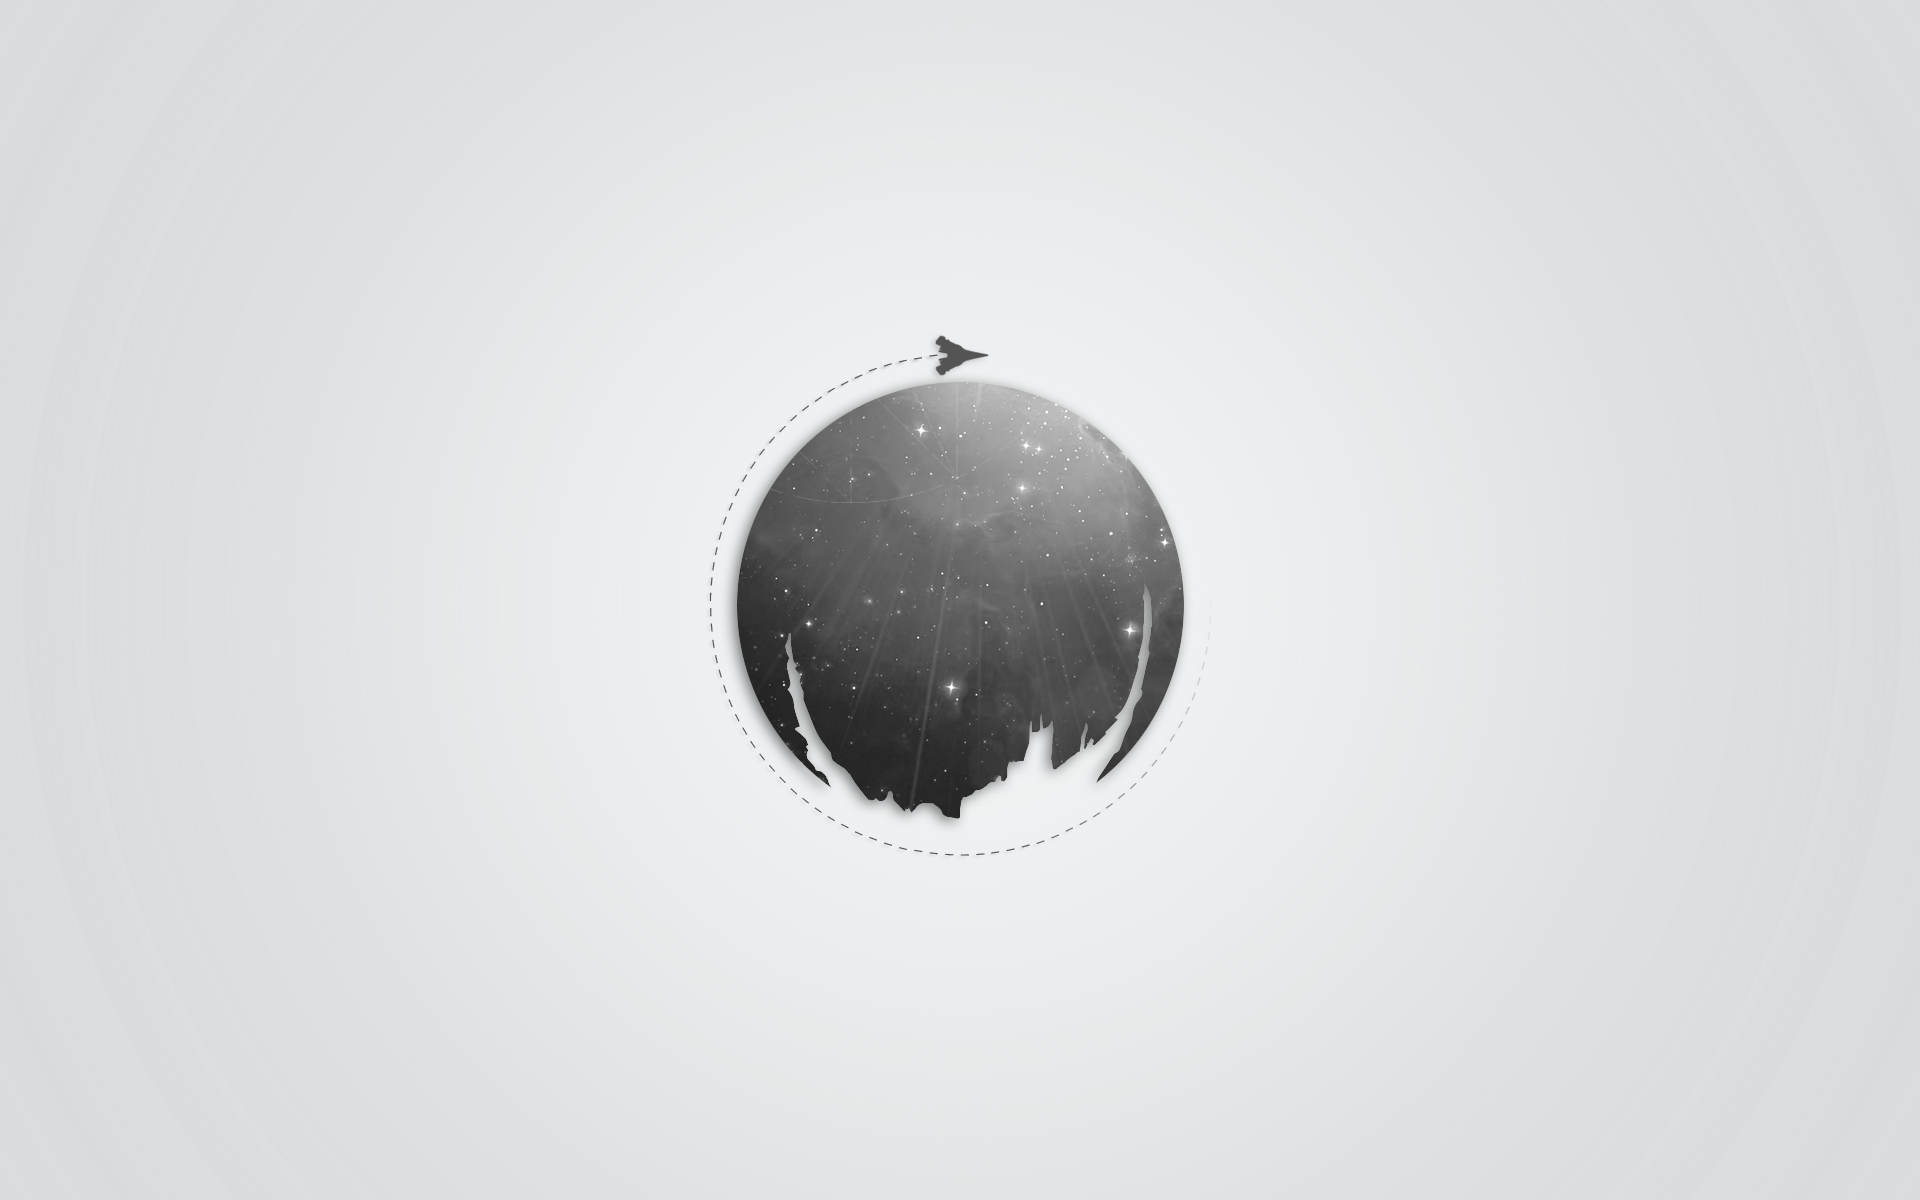 Minimalism Simple Background Monochrome Destiny Video Game Video Games Wallpaper Black Abstract Destiny Phone Backgrounds Tumblr